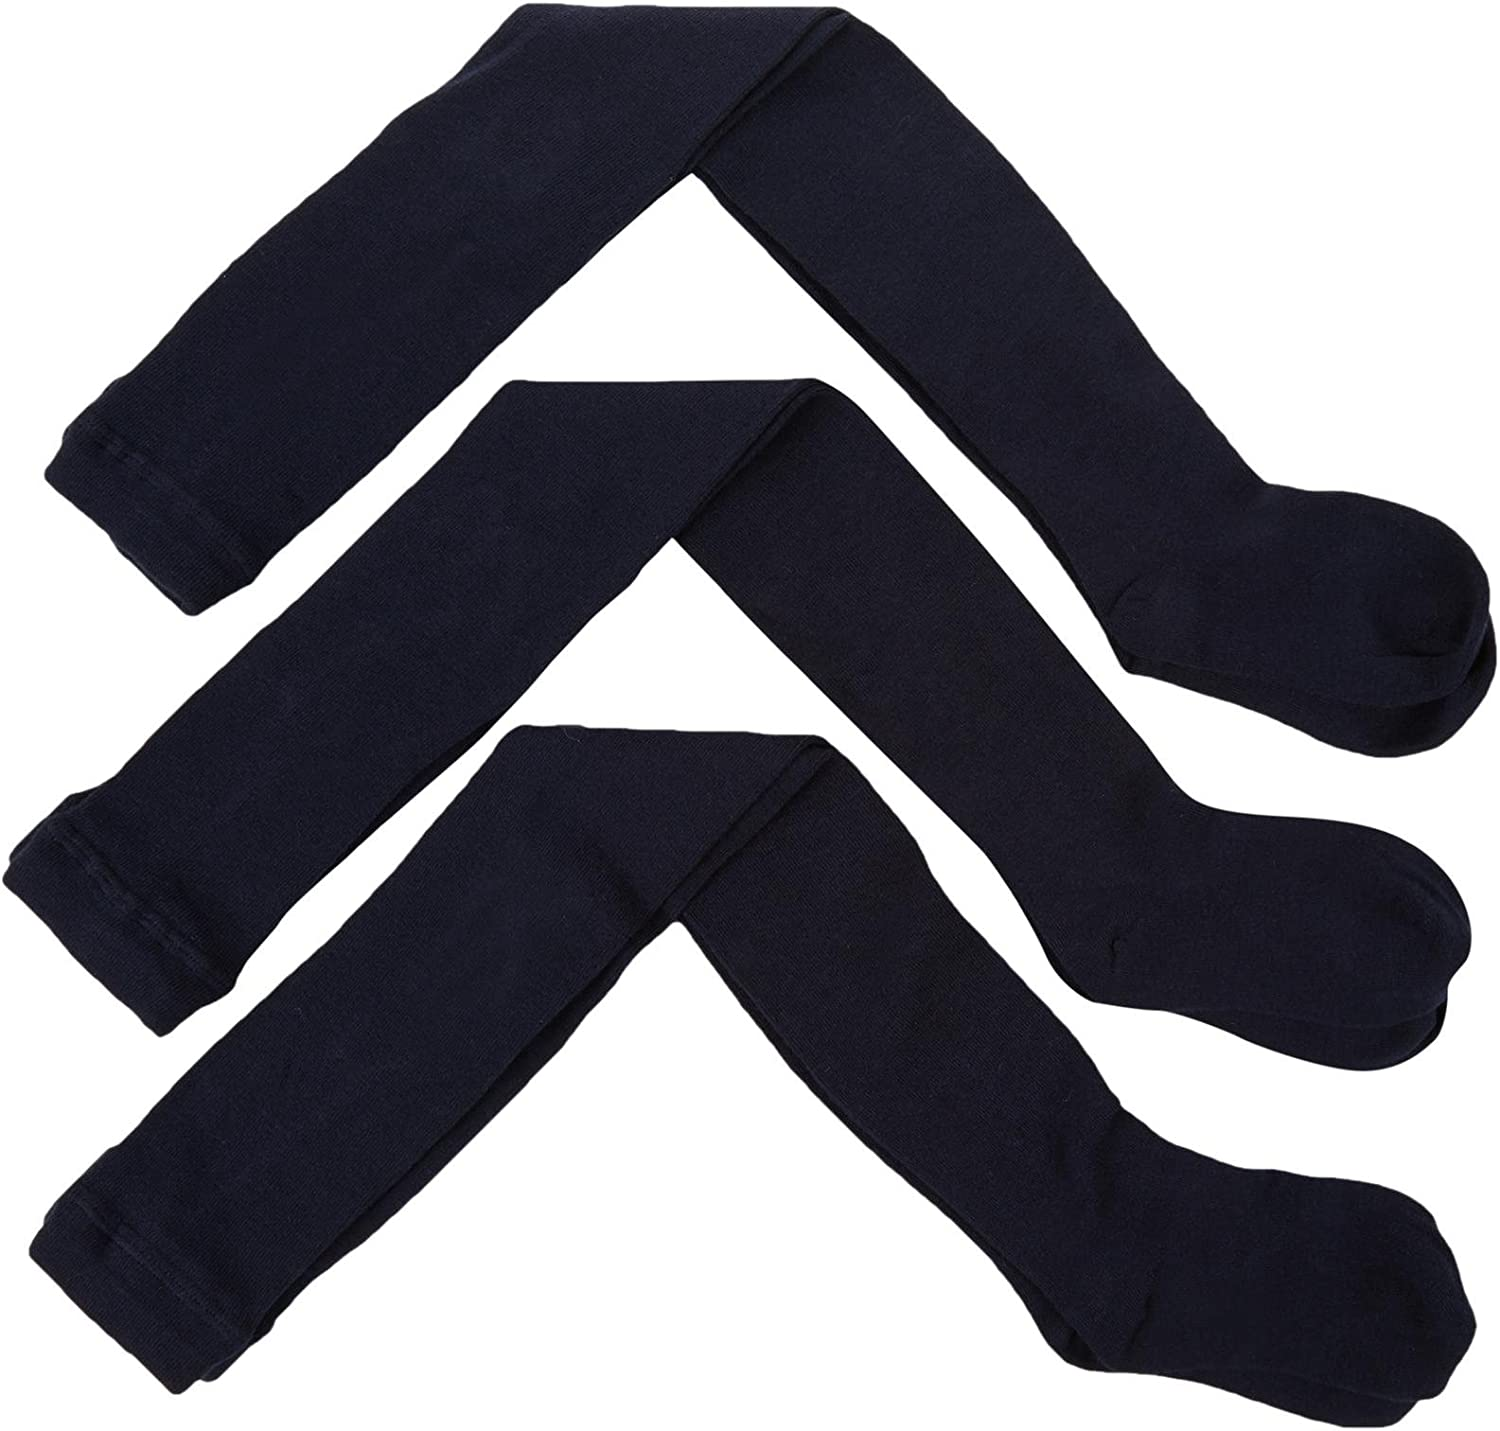 Jefferies Little Boys' 3 Pack Seamless Tights (Toddler/Kid) - Navy - 2-4 Years